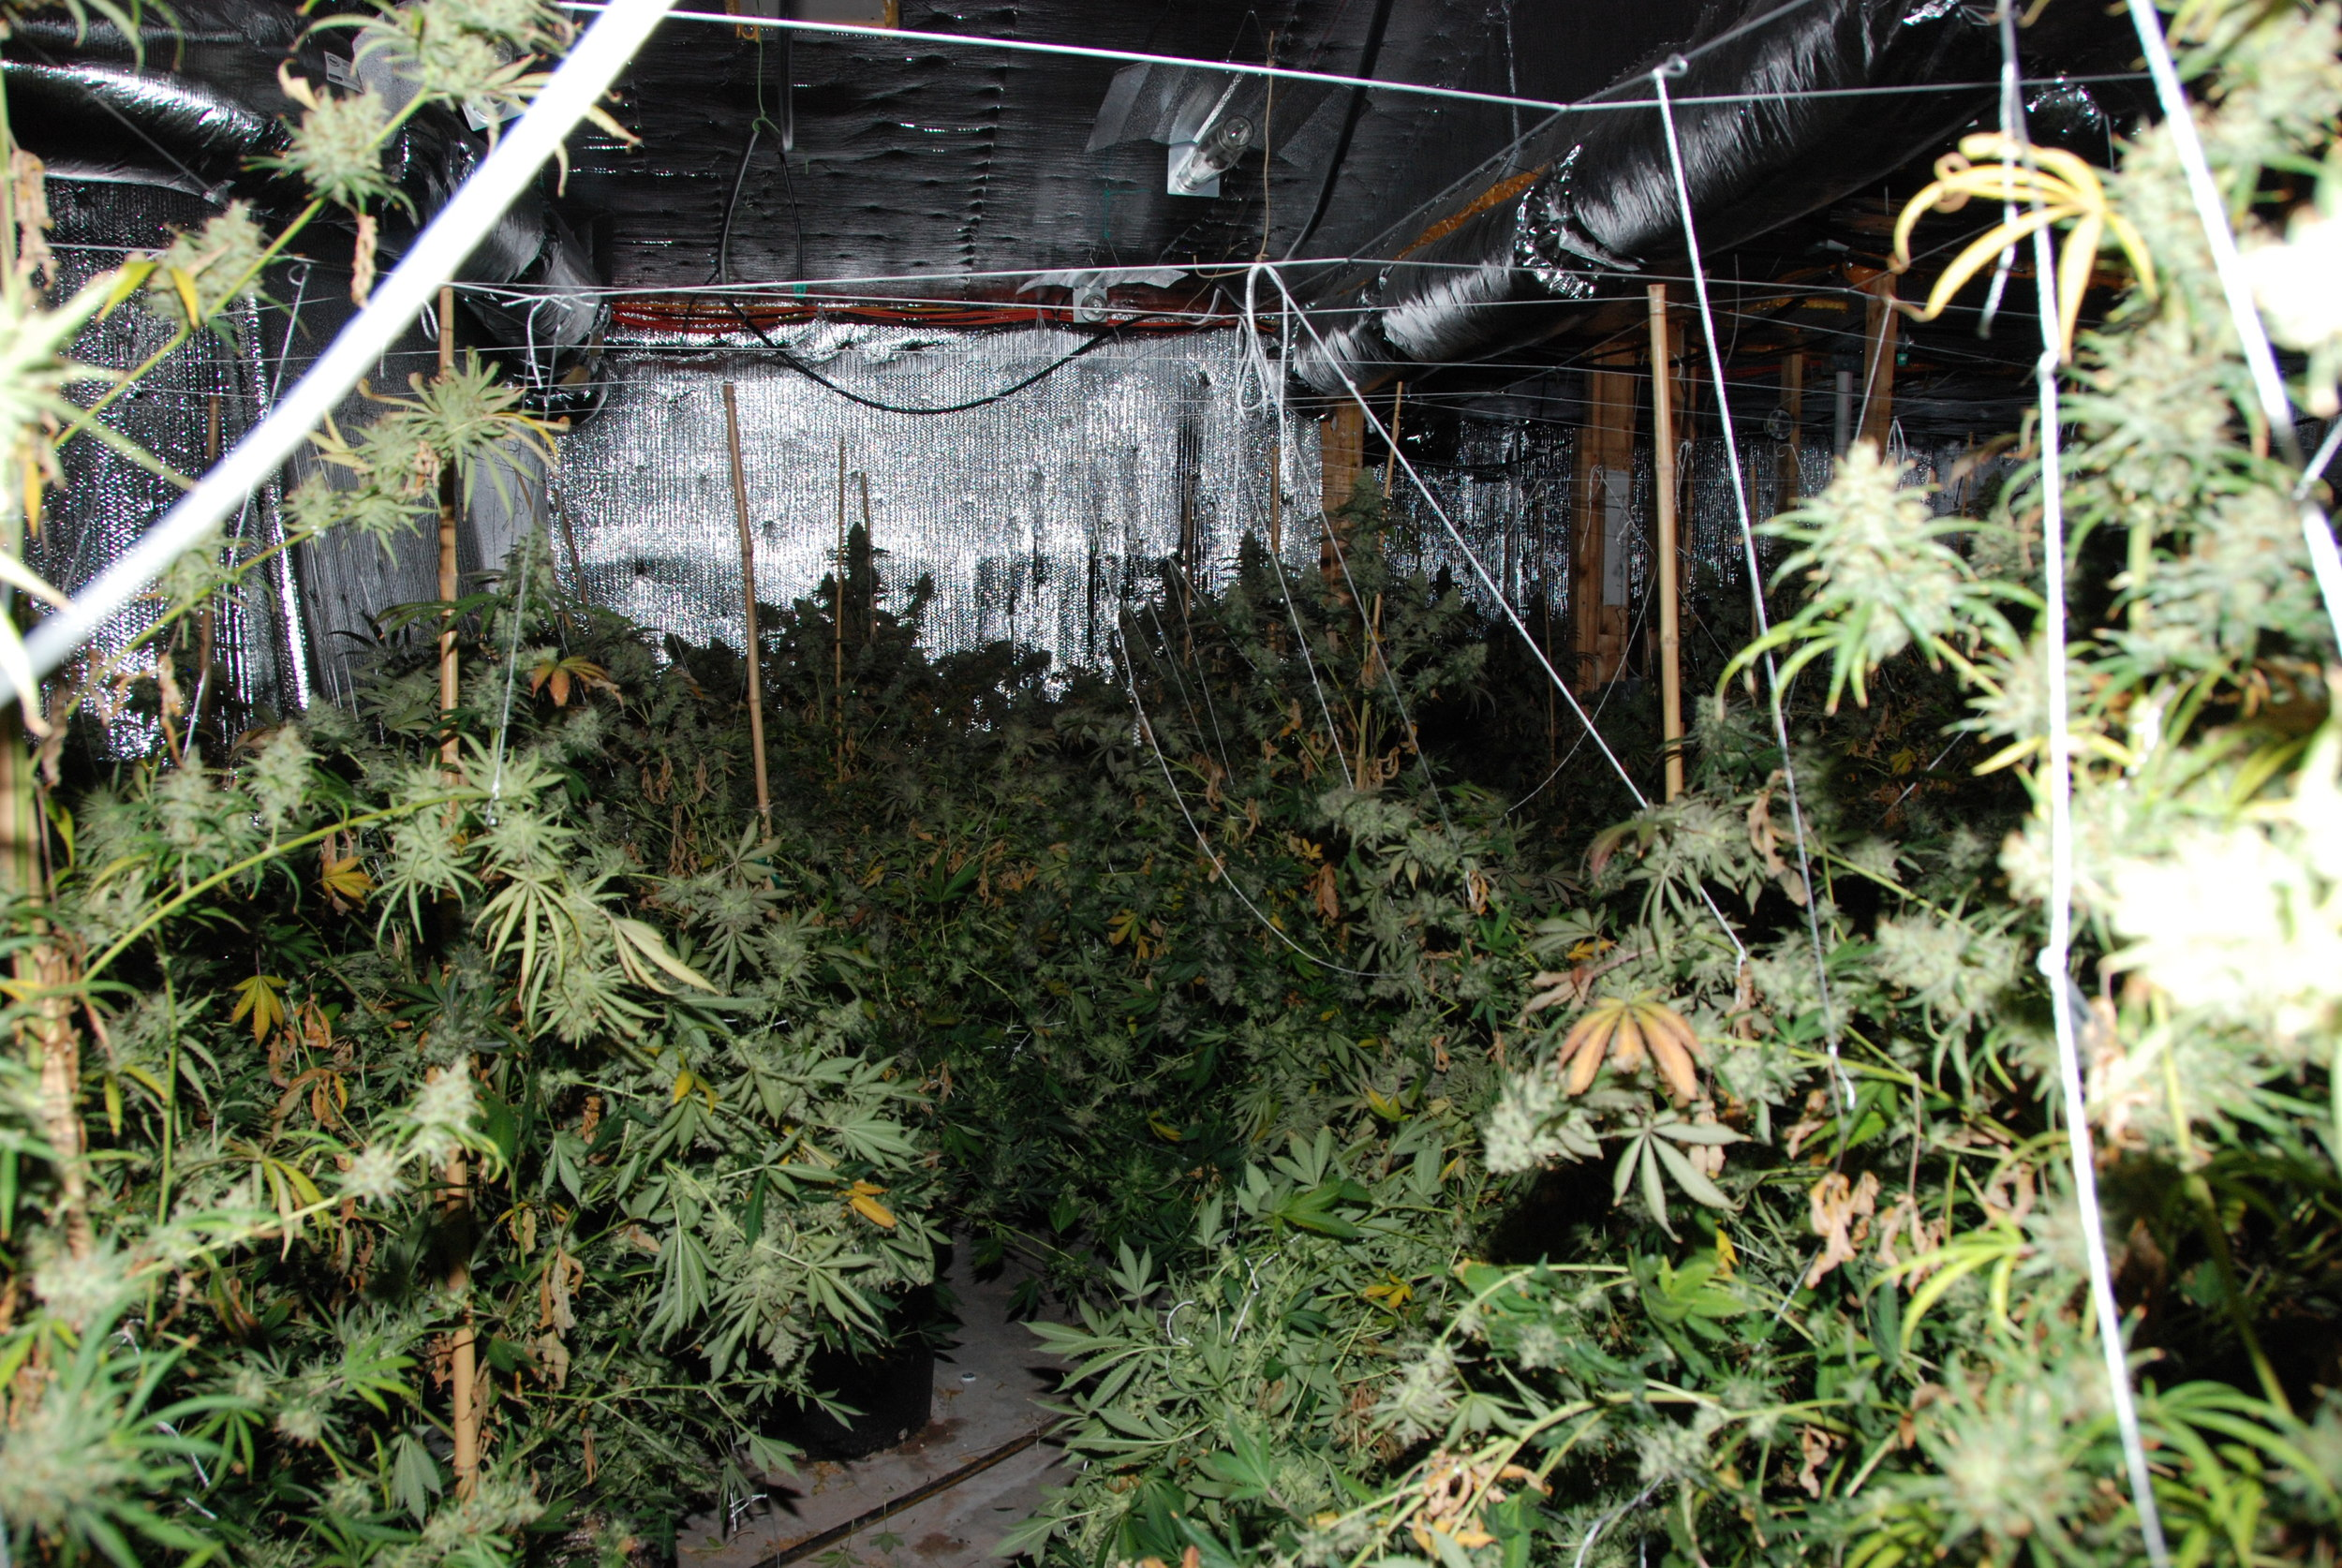 PHOTO: Cape Coral Police Department busted 2 additional marijuana grow houses linked to Jair Baluja-Martinez. (Photo Courtesy ofCape Coral Police Department)